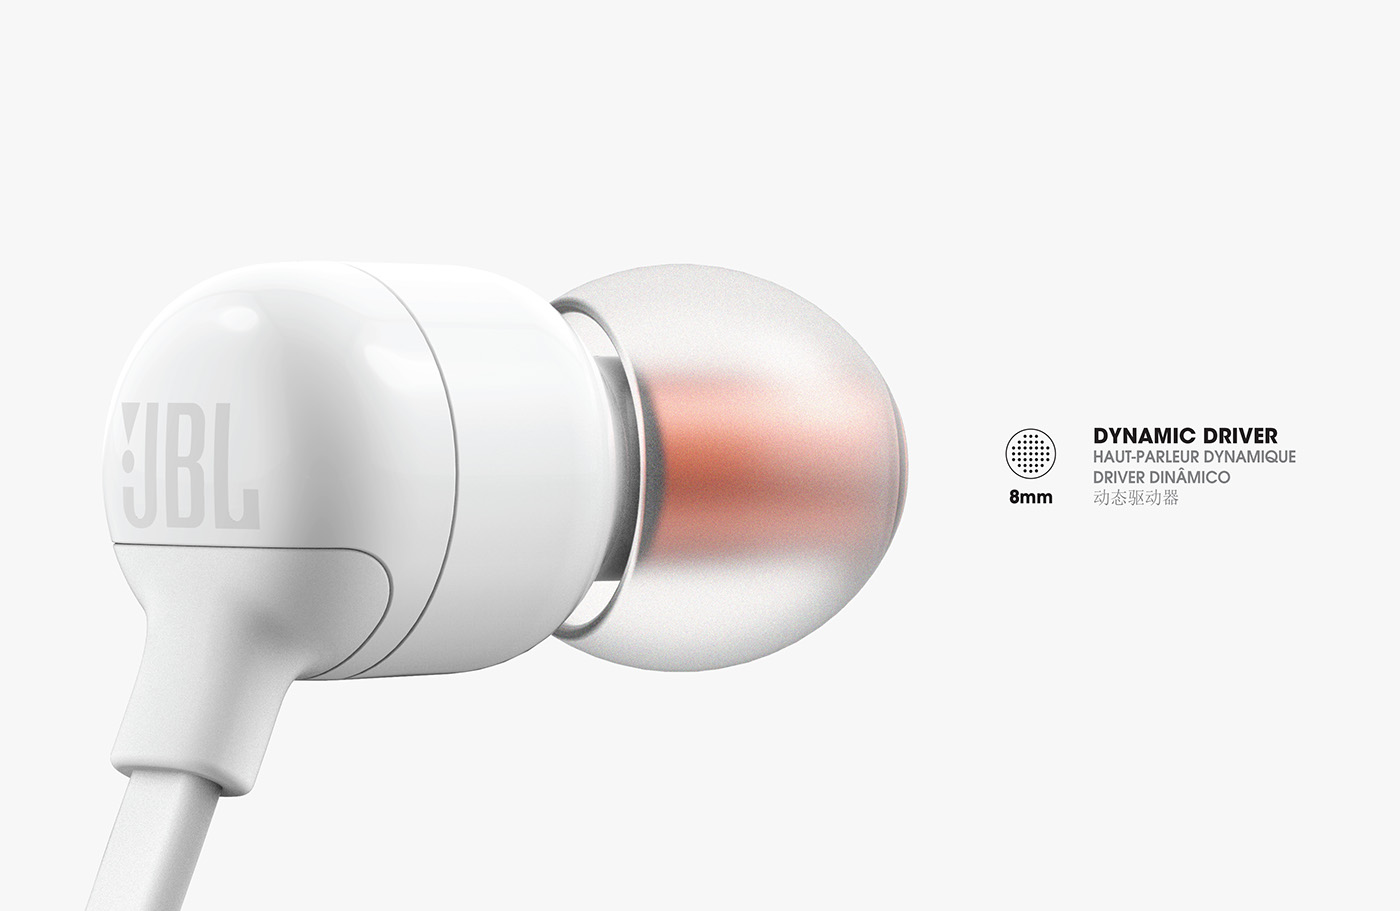 Malta - JBL (T110BT) Wireless in-ear headphones - White